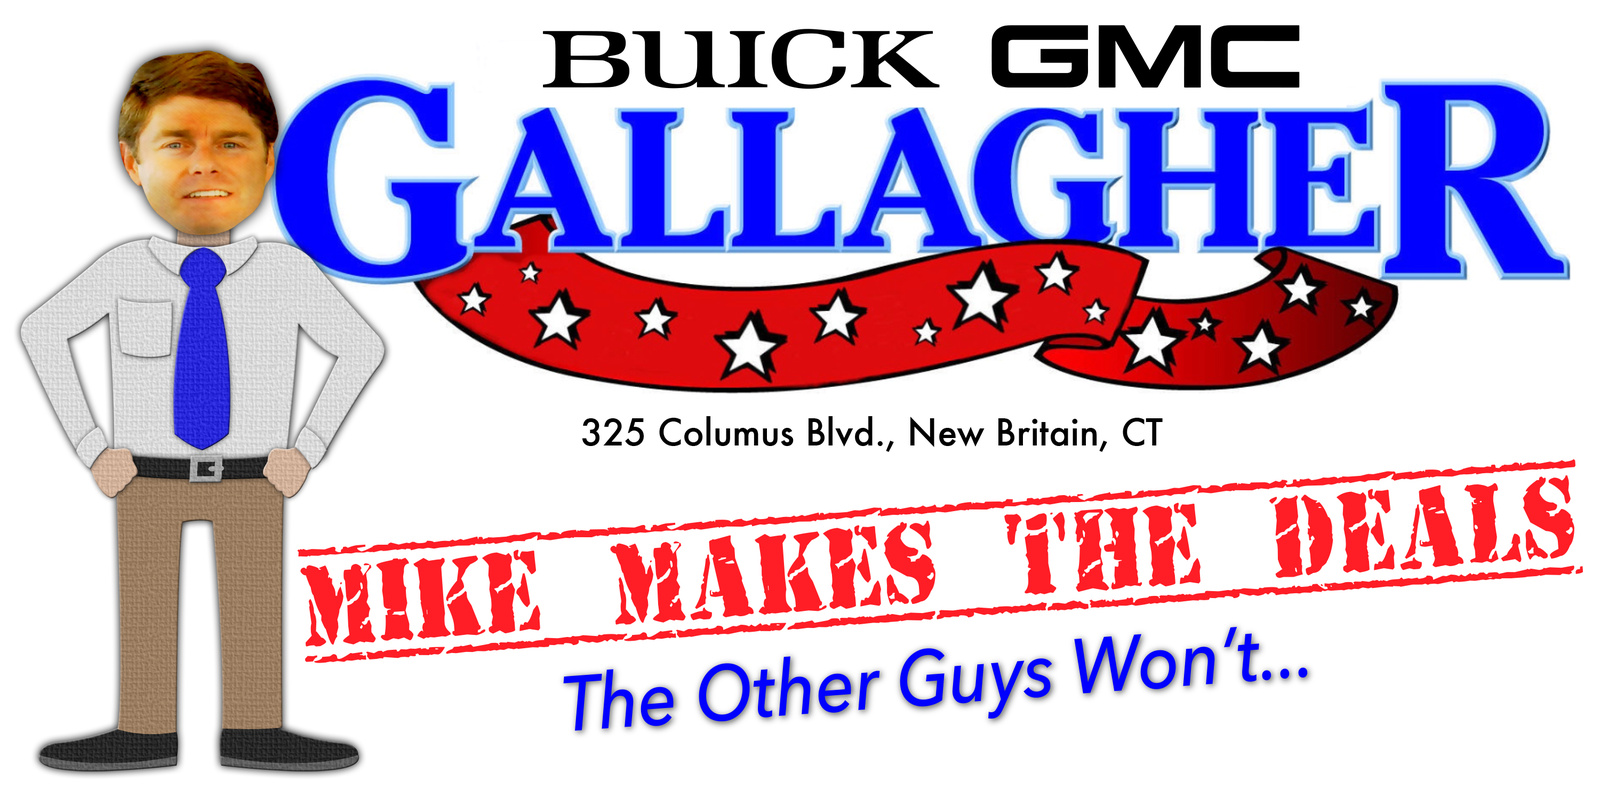 Honda Dealers In Ct >> Gallagher Buick GMC - New Britain, CT: Read Consumer ...